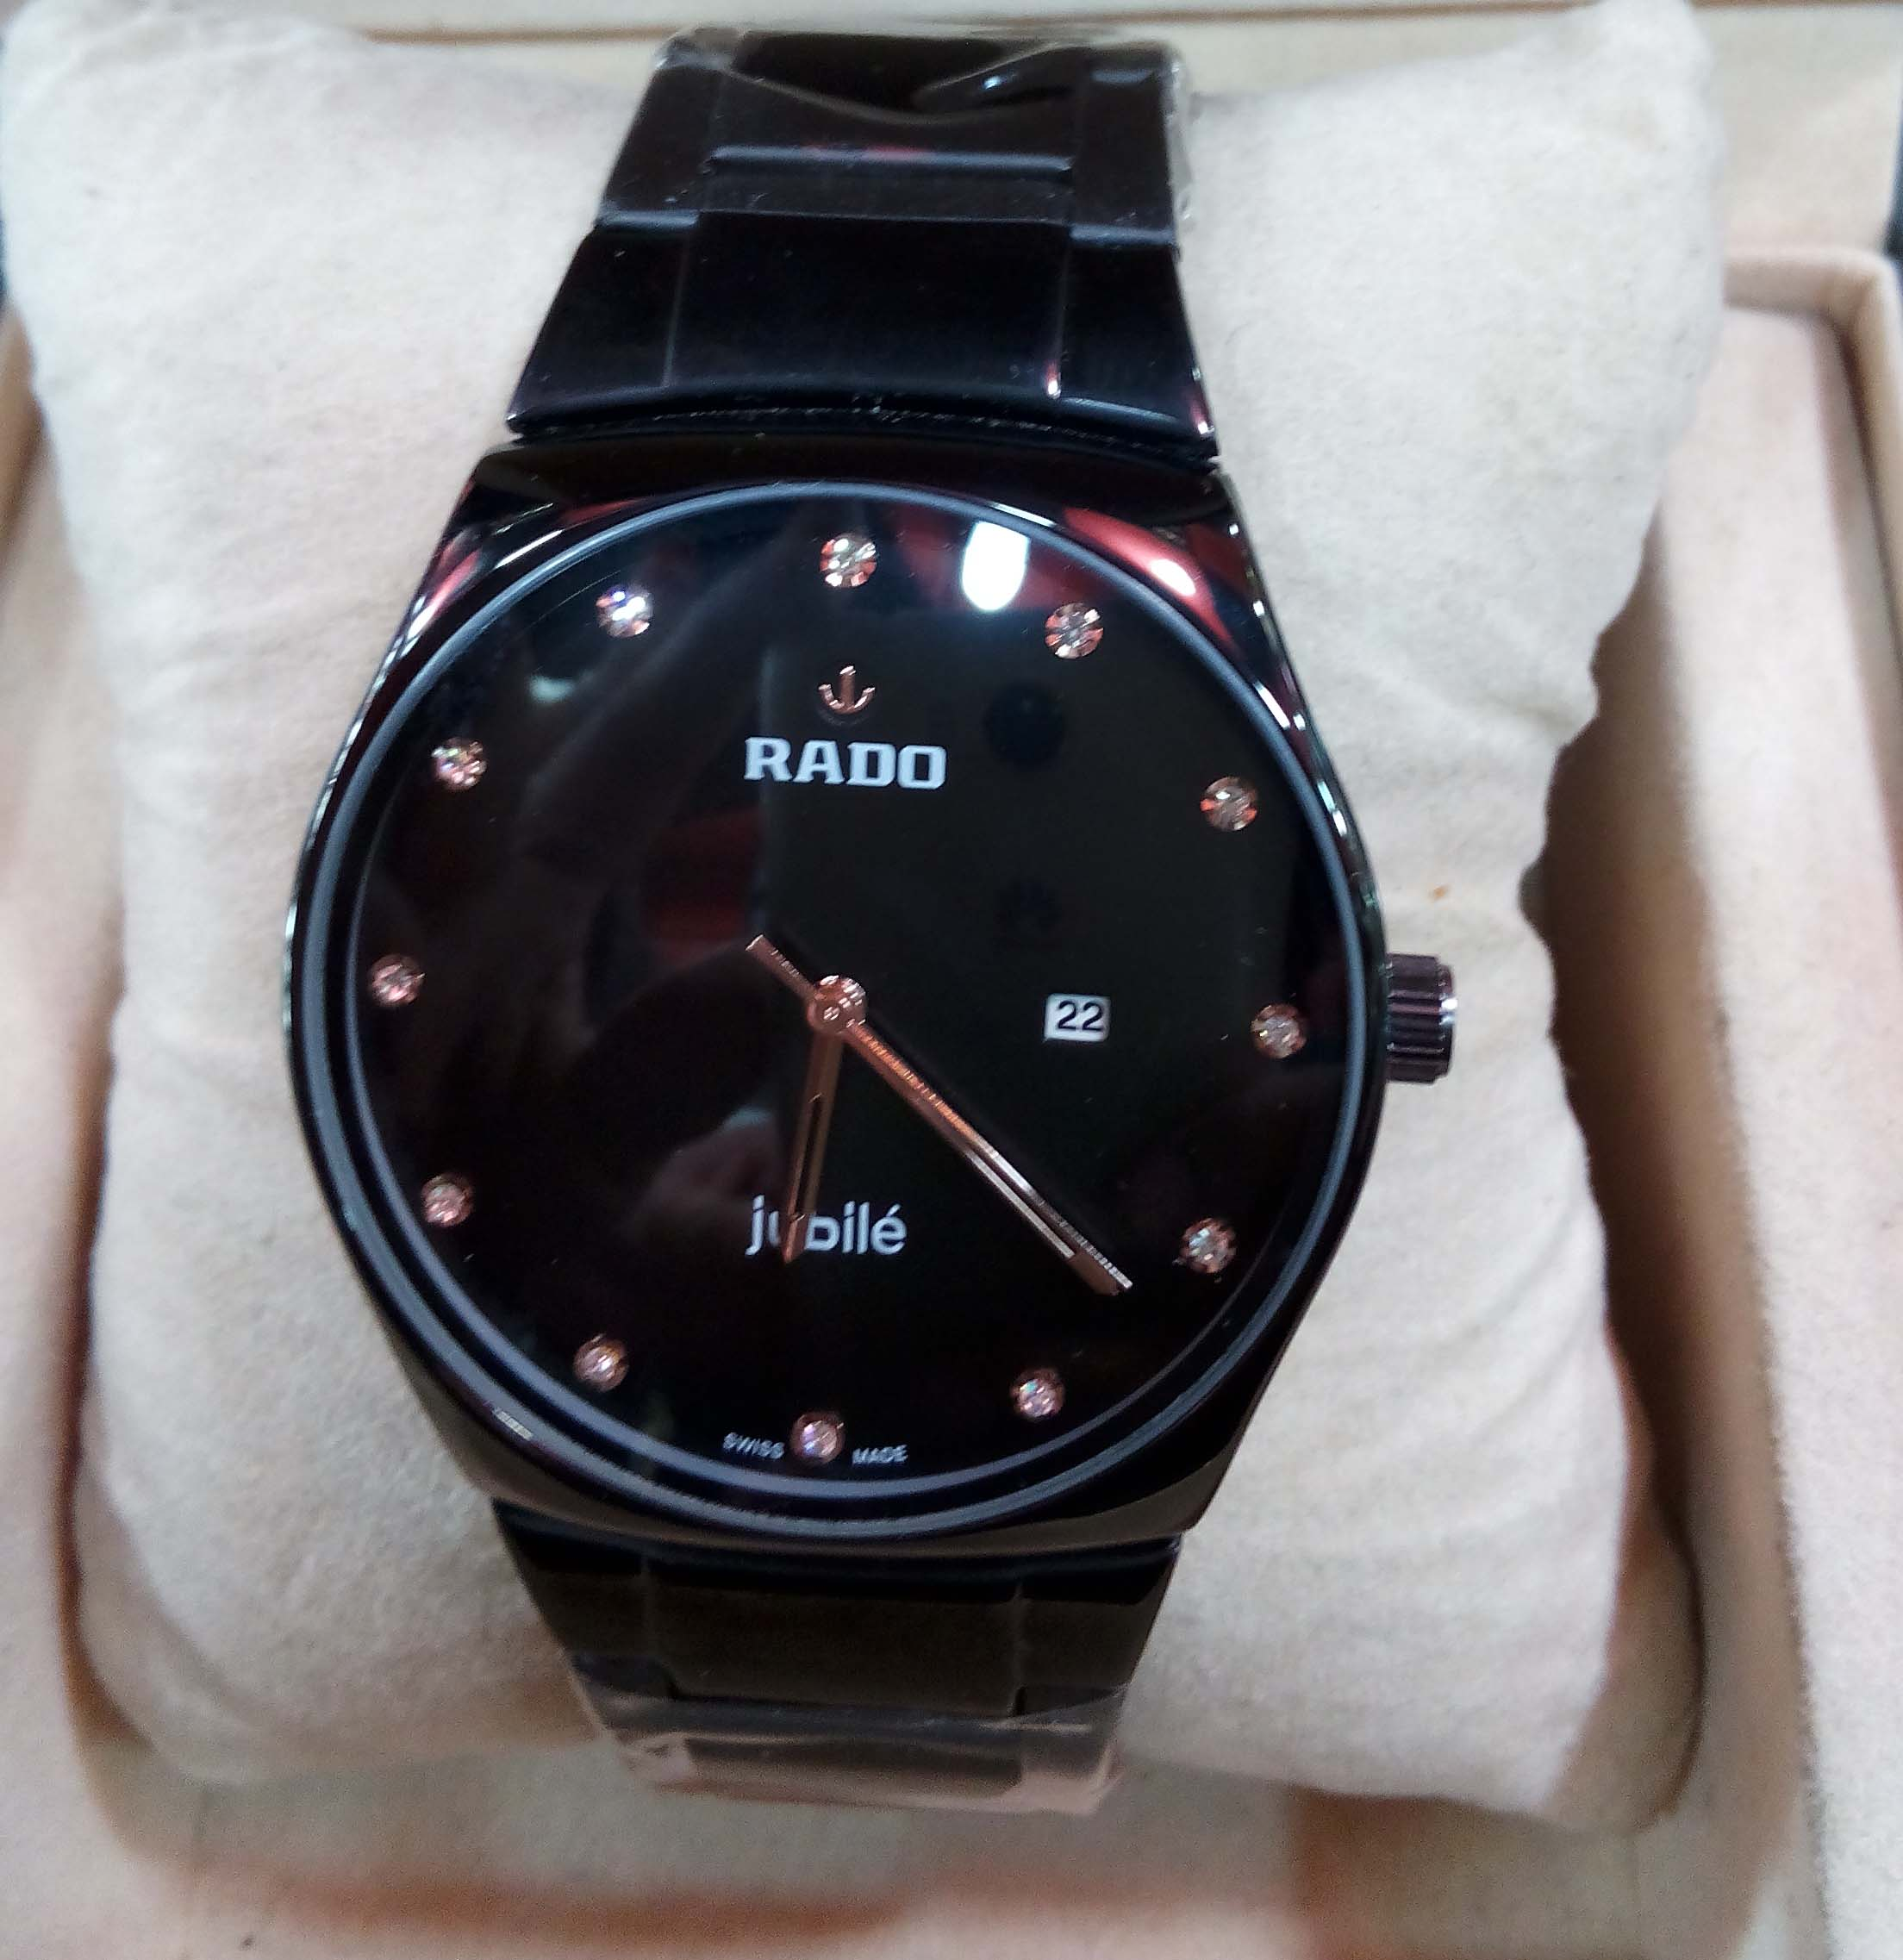 rado watches Welcome to the official rado watch channel in the words of the company's founder: if we can imagine it, we can make it and if we can make it, we will in.